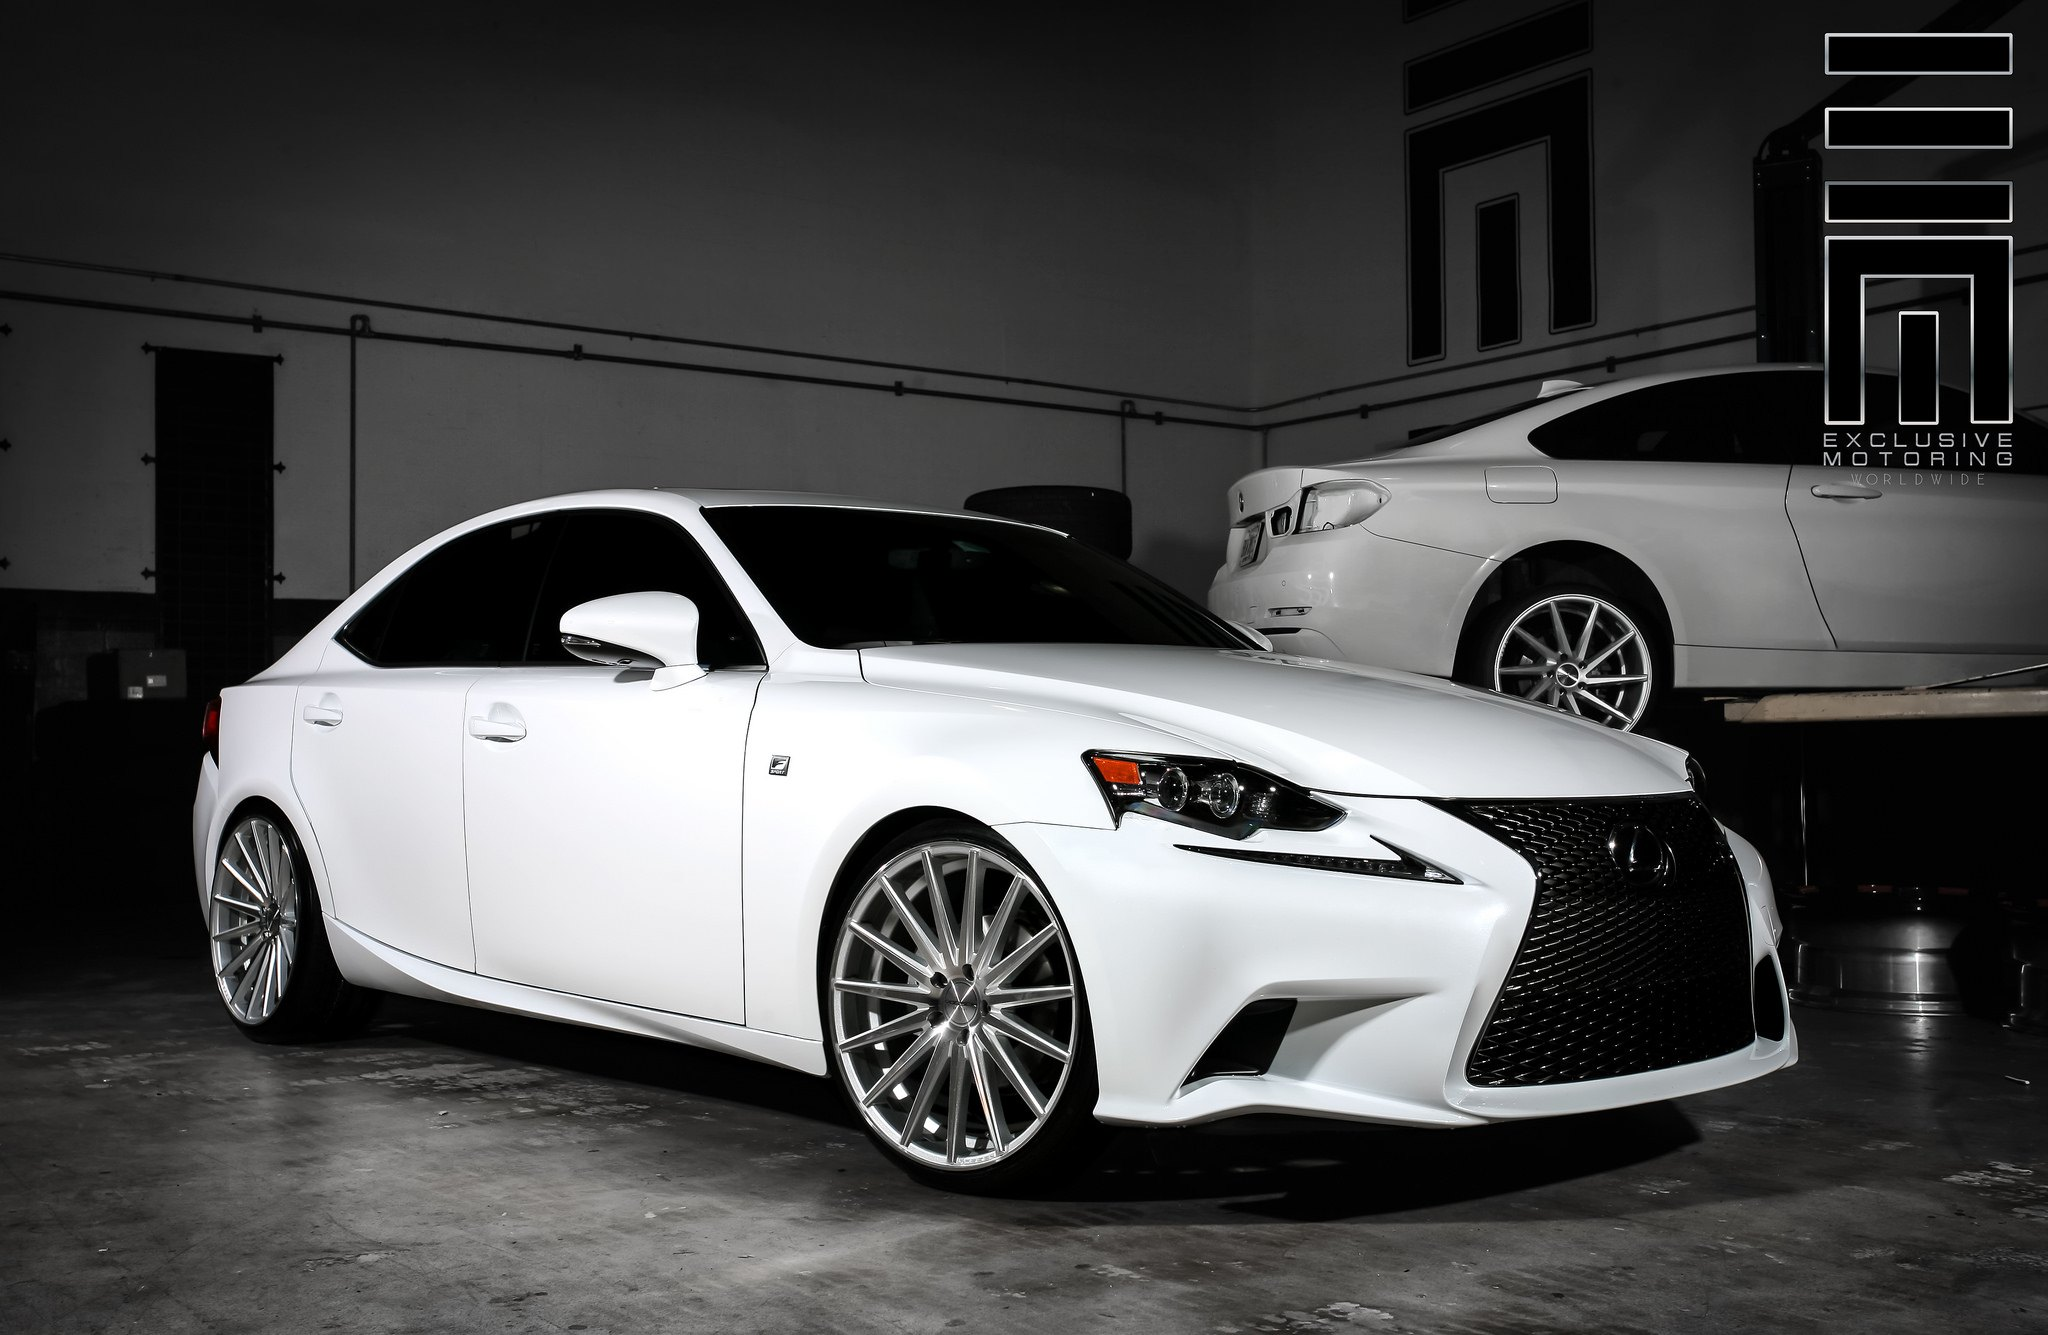 Diamond White Lexus Is250 F On Vossen Rims By Exclusive Motoring